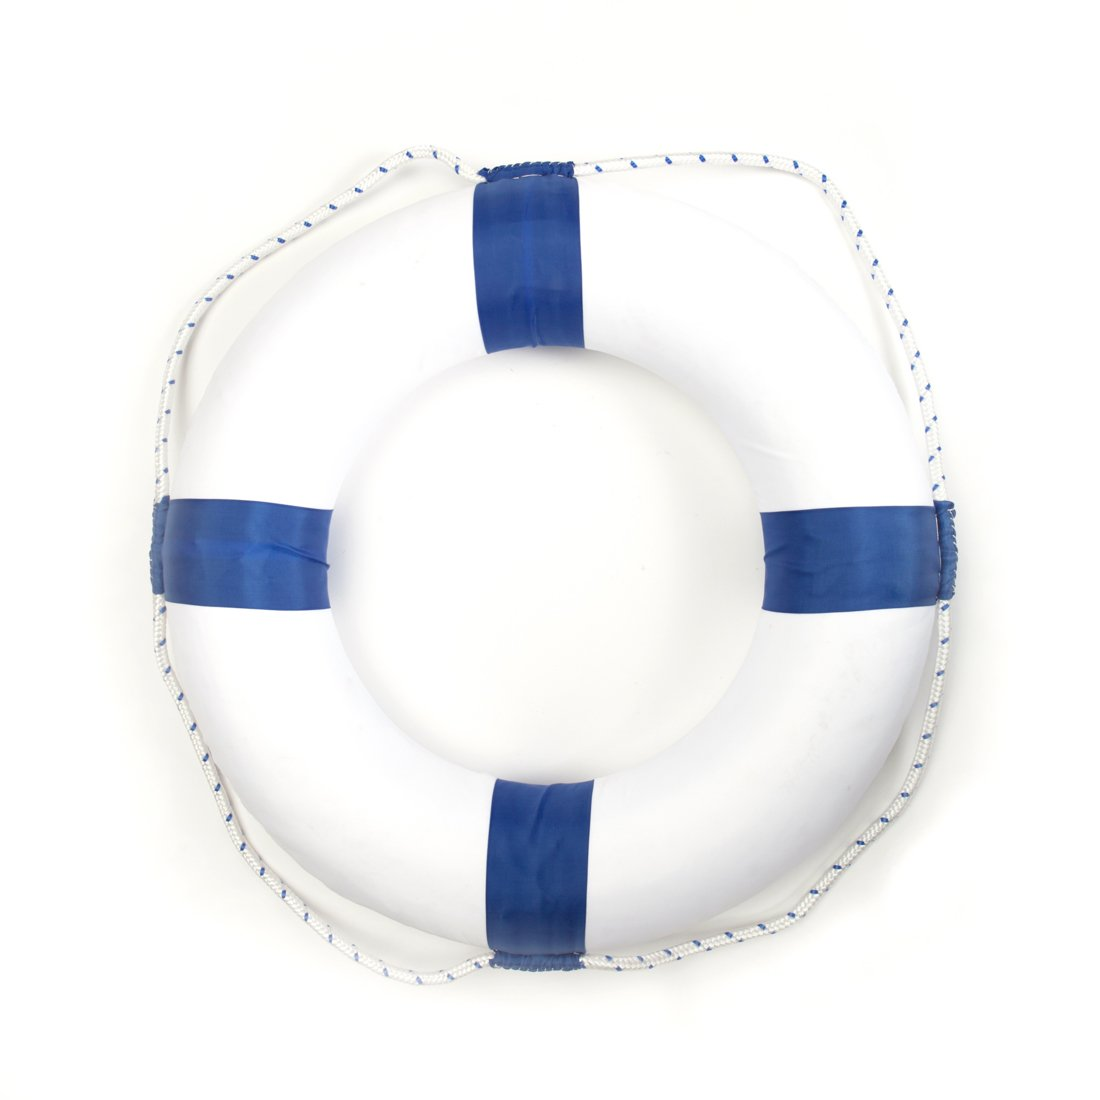 motawator Foam Ring Buoy Swimming Pool Safety Life Preserver W/Nylon Cover - Child by motawator